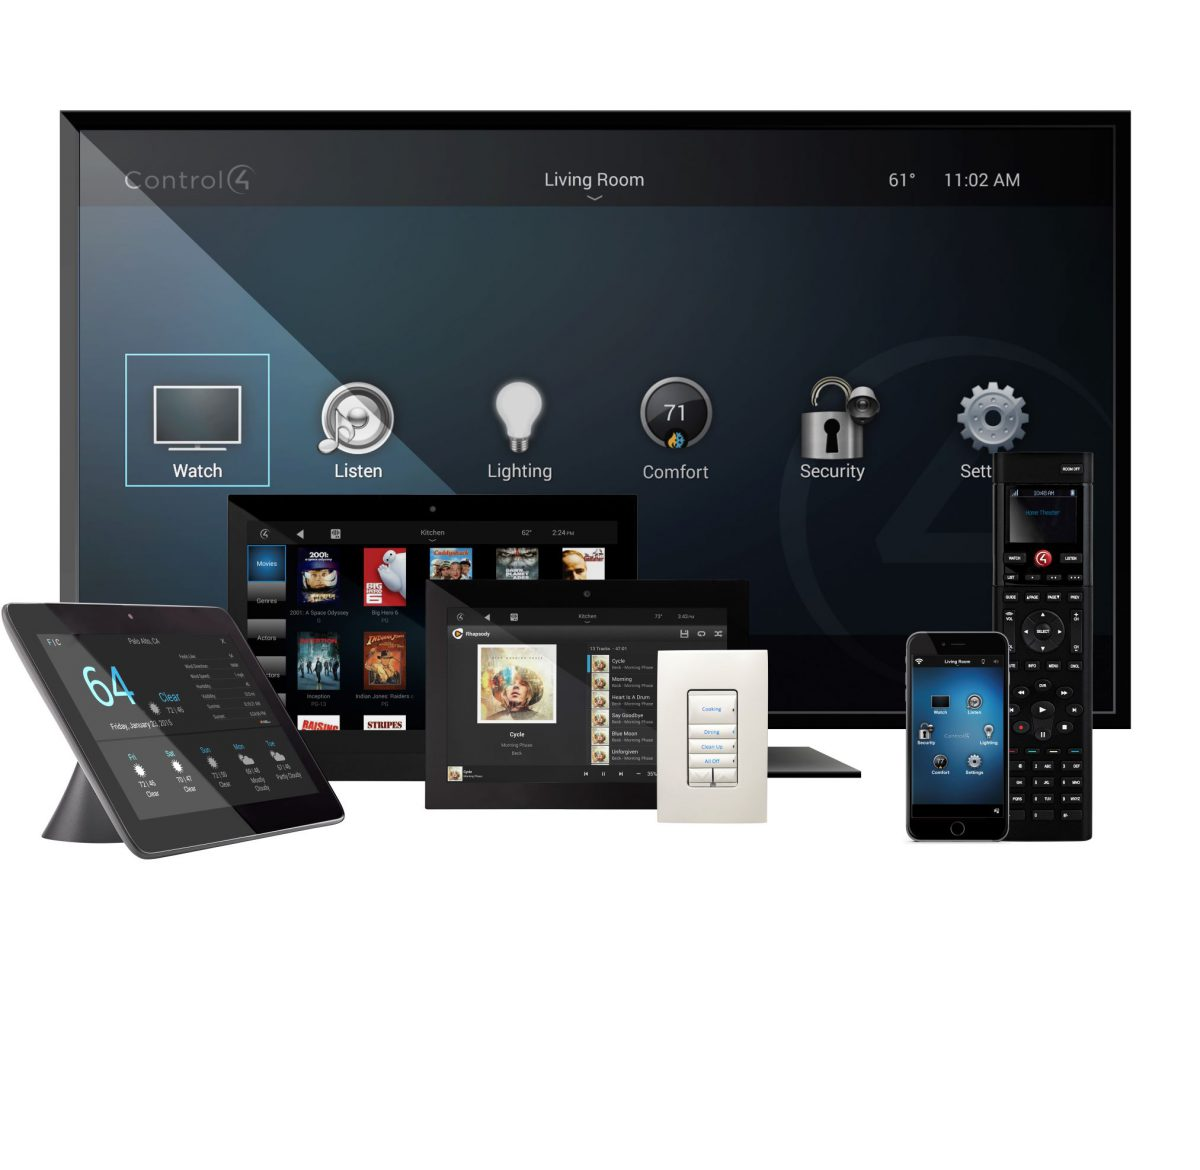 Control4 Smart Home Solutions